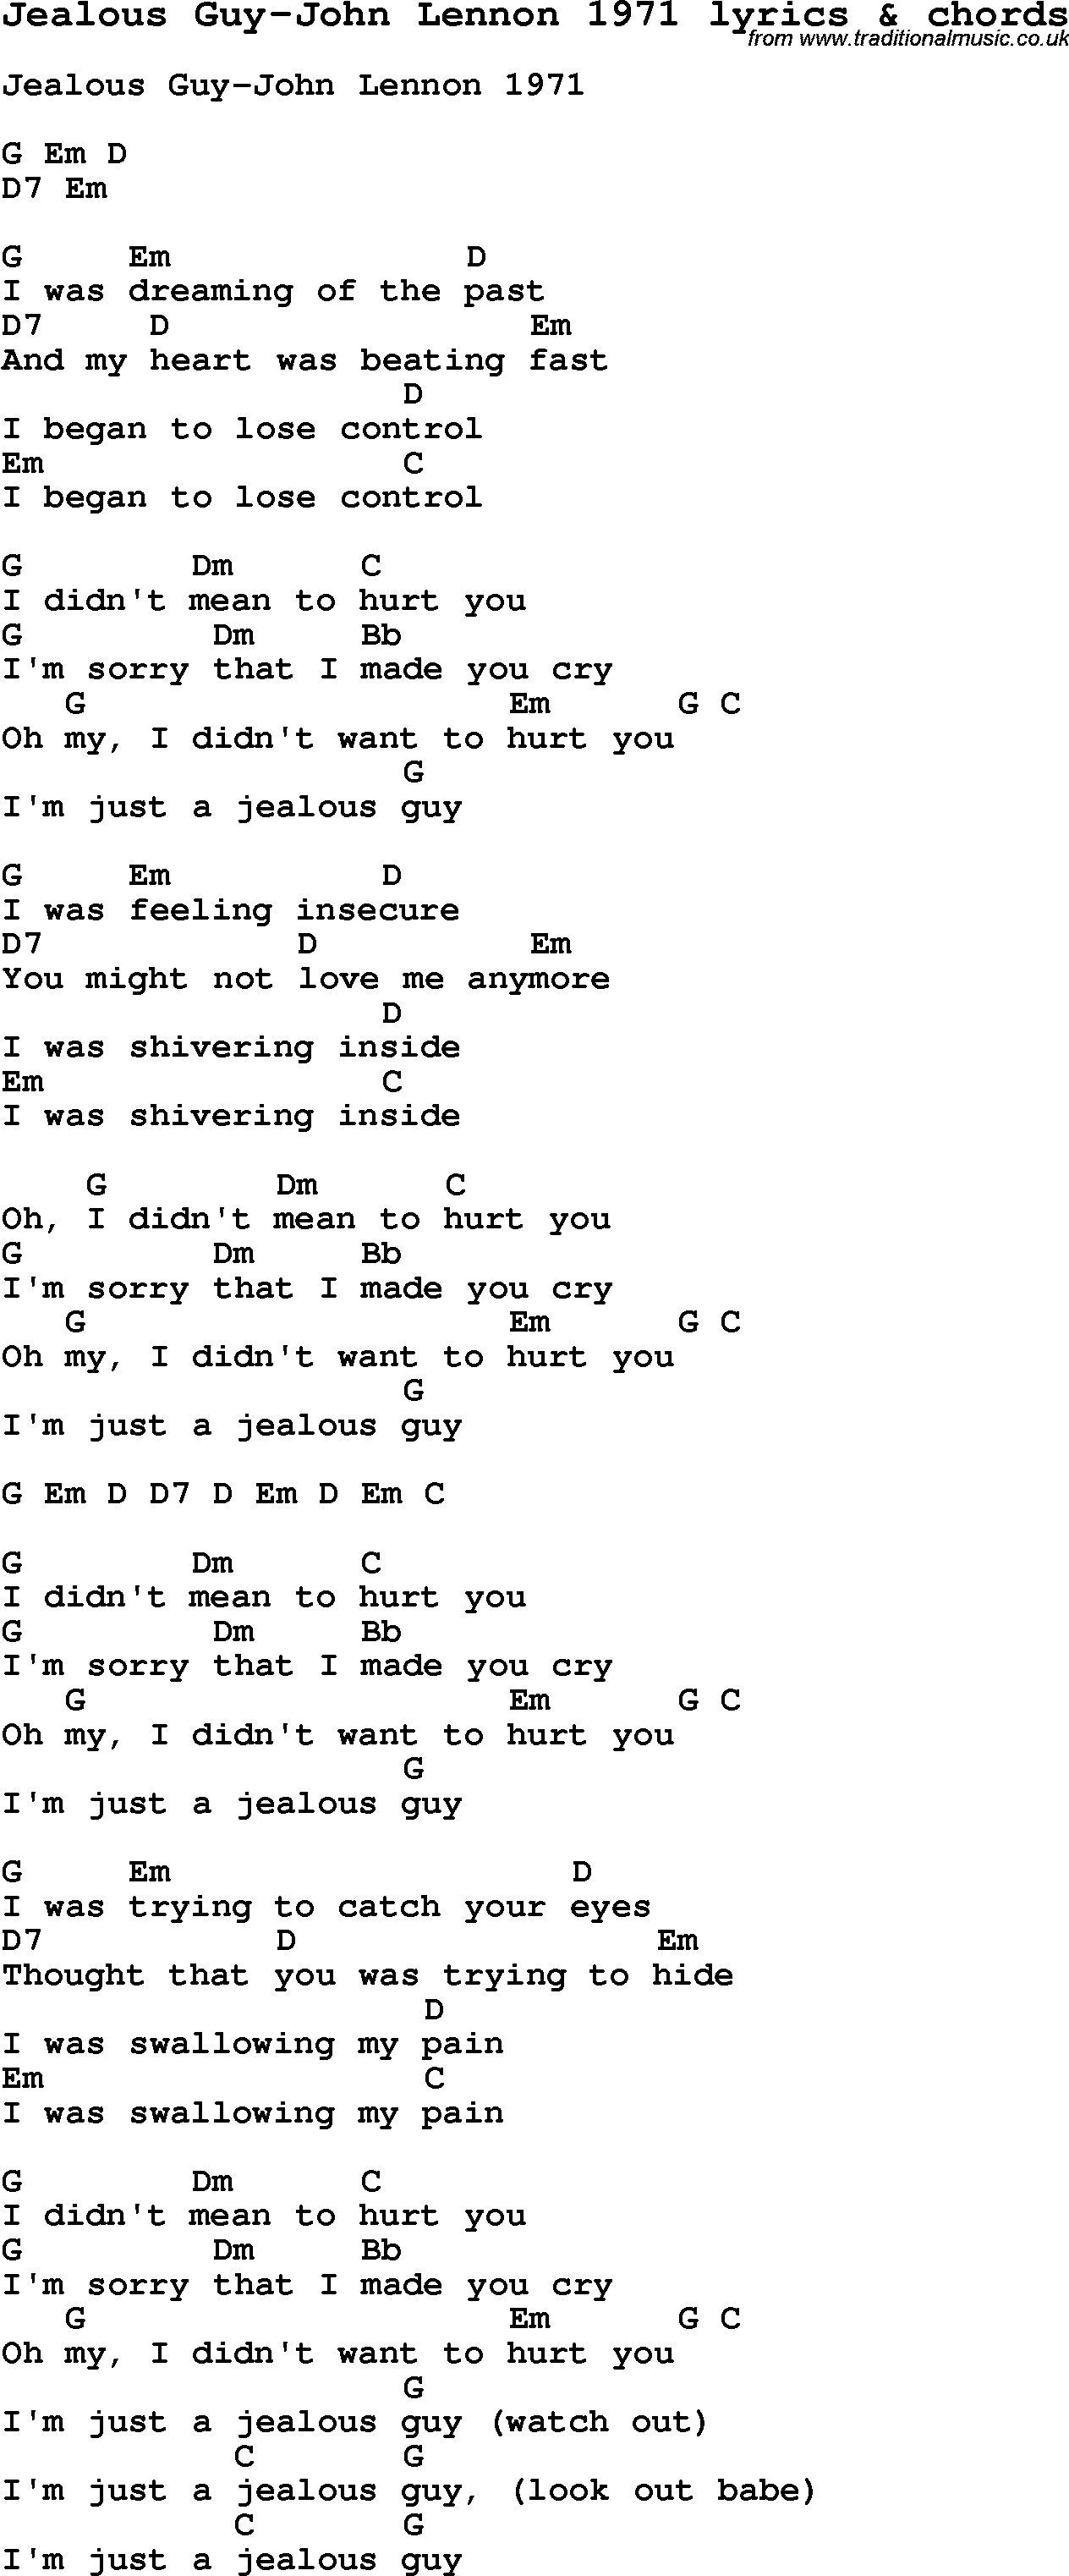 Love Song Lyrics For Jealous Guy John Lennon 1971 With Chords For